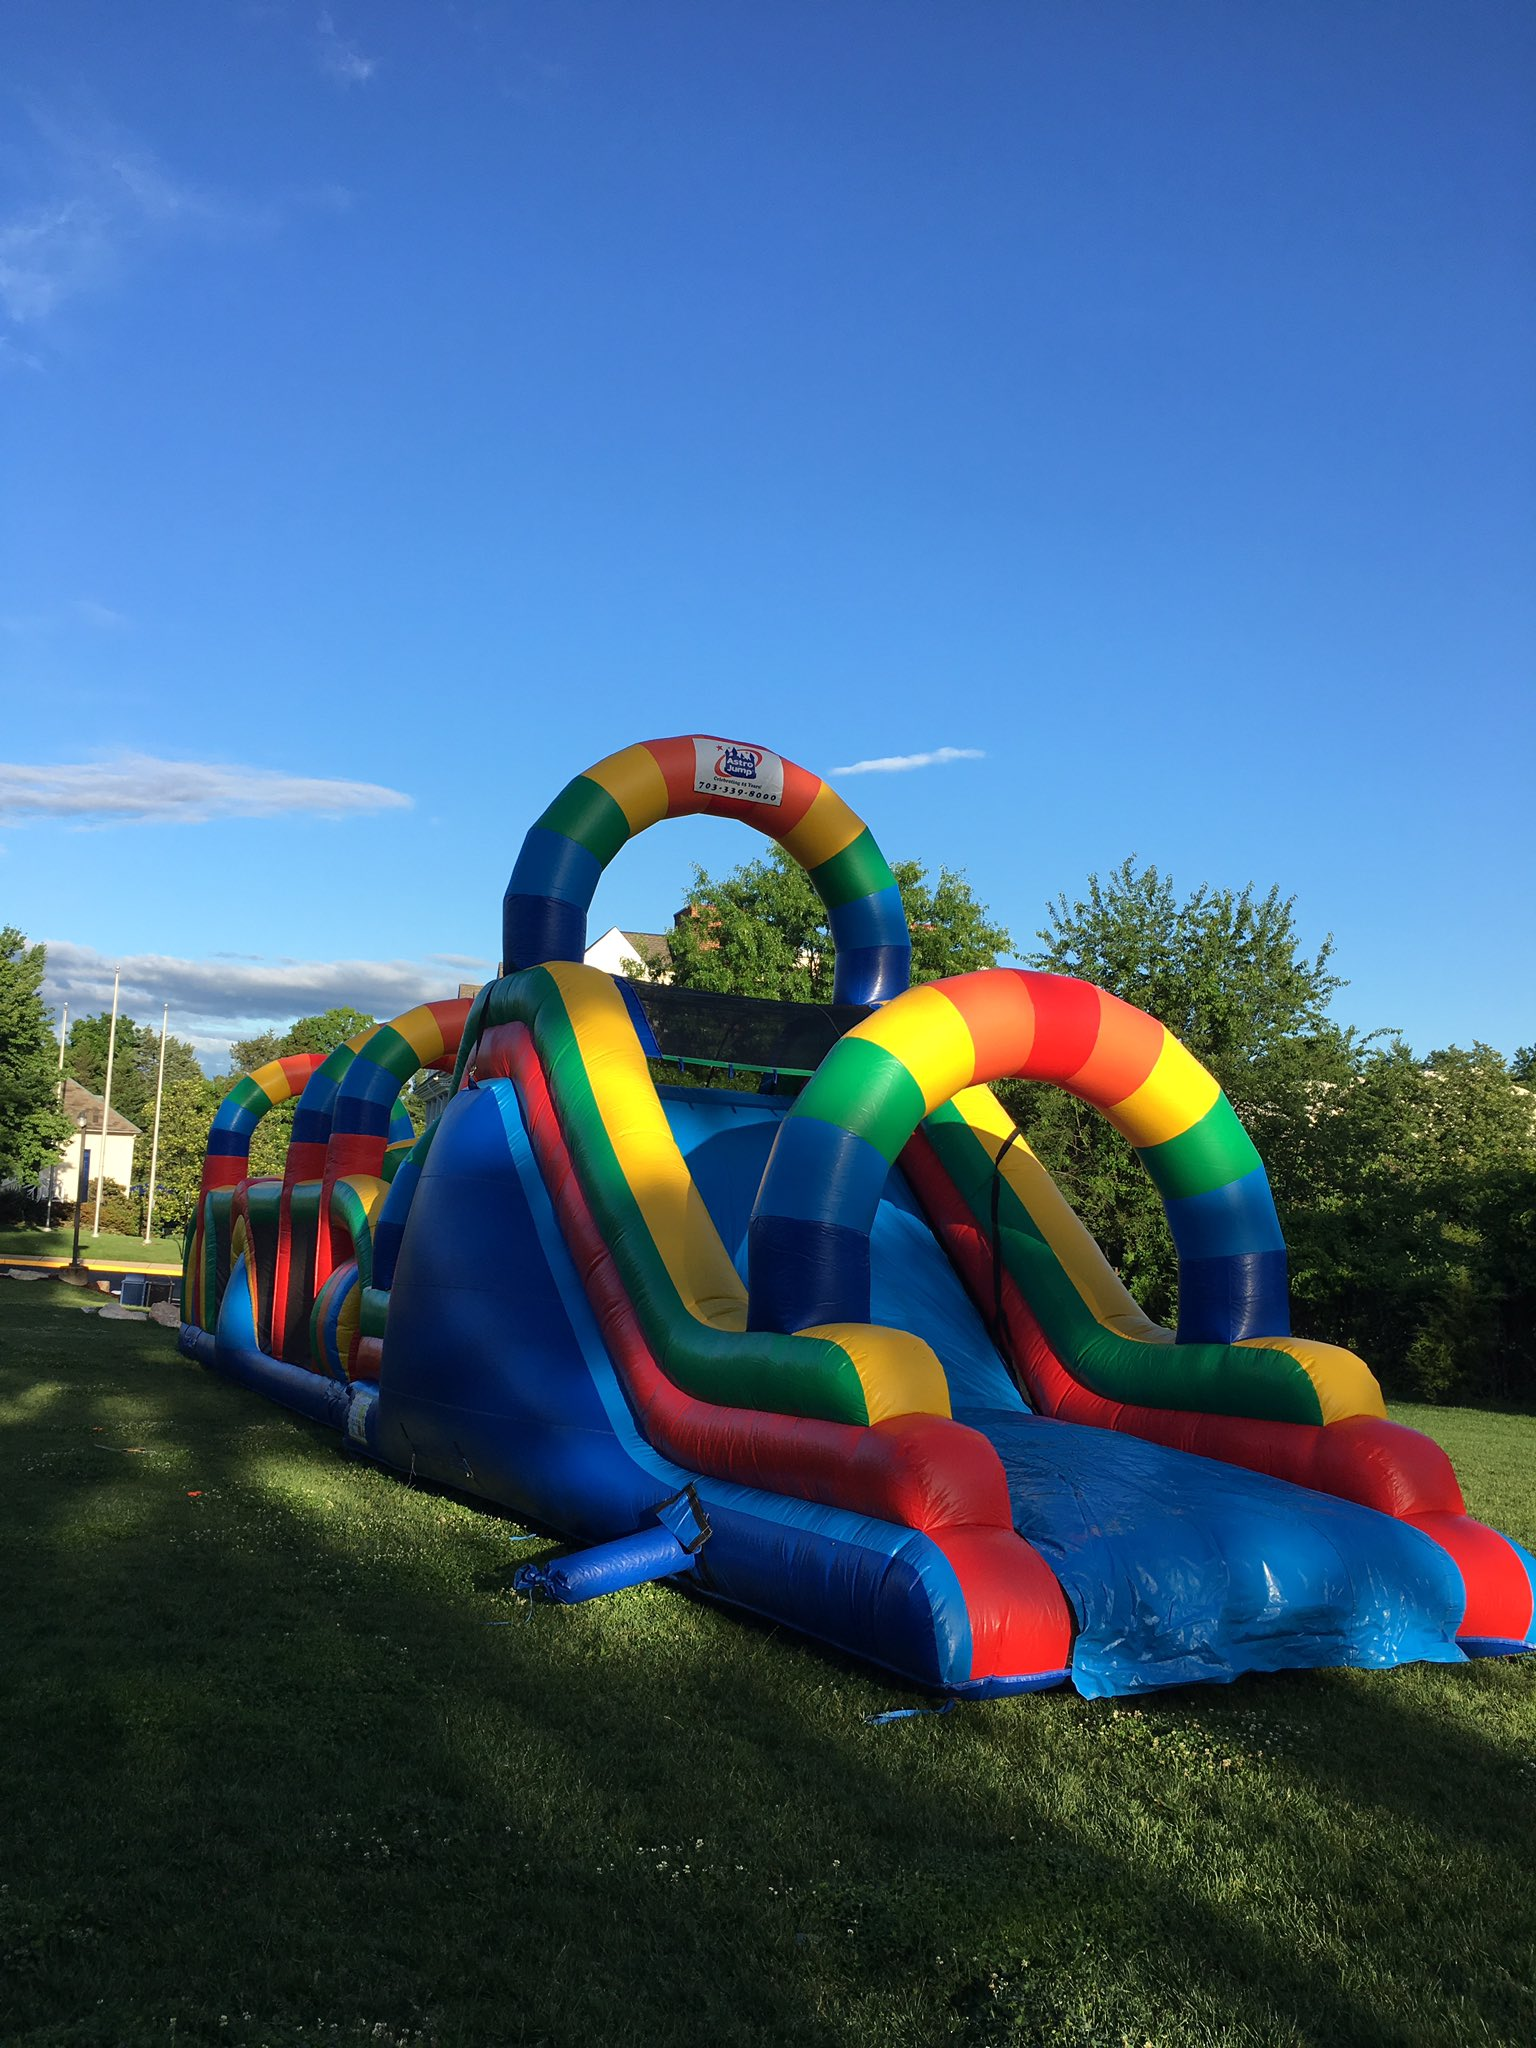 The obstacle course is ready for action at #myflinthill House Olympics! https://t.co/Ivf3tO1um7